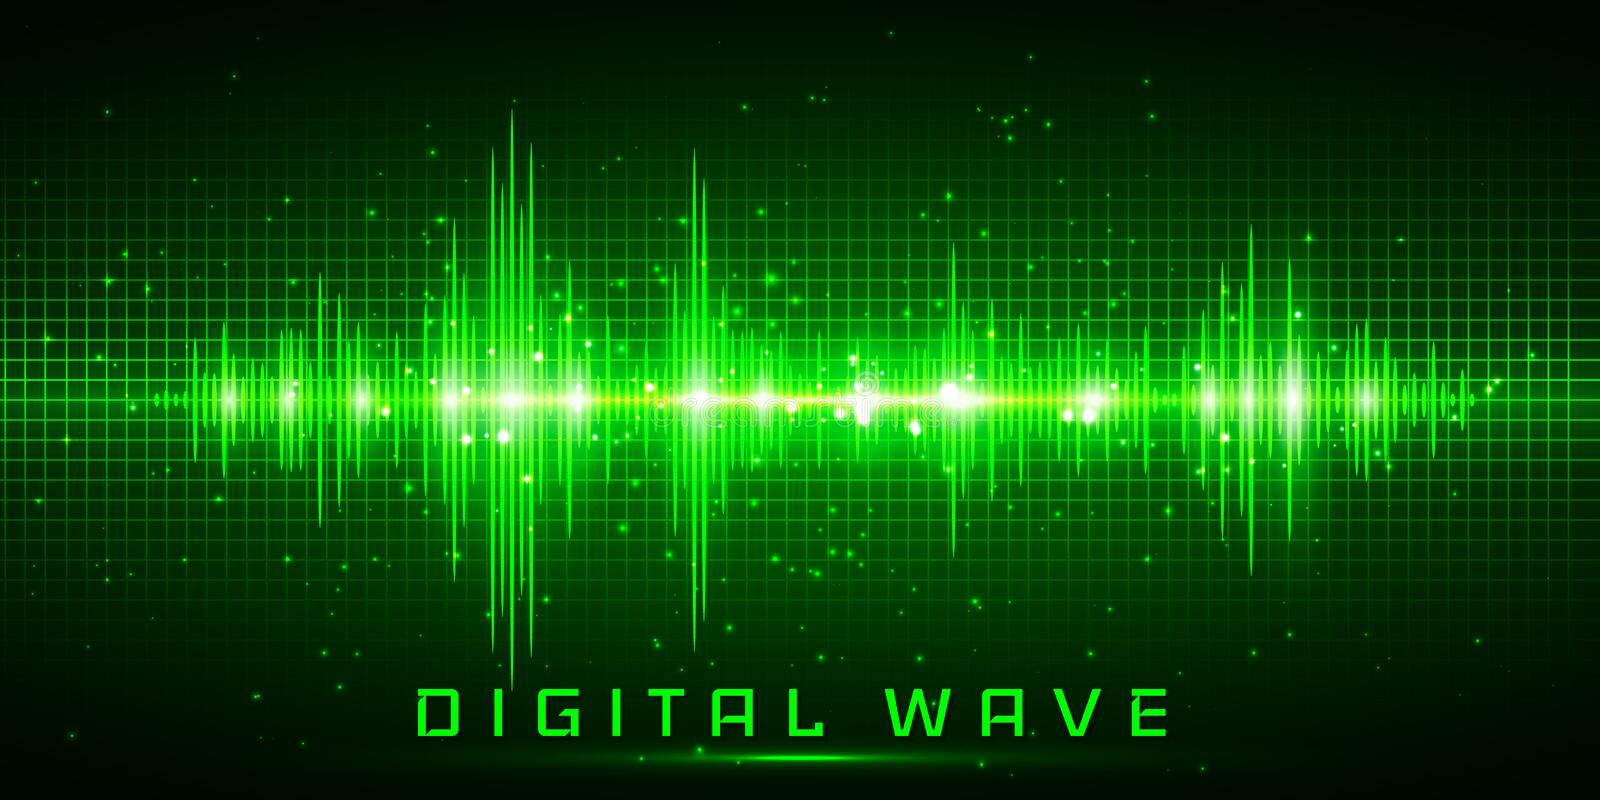 Digital wave, Sound waves oscillating glow light, Abstract technology background - Vector.  vector illustration